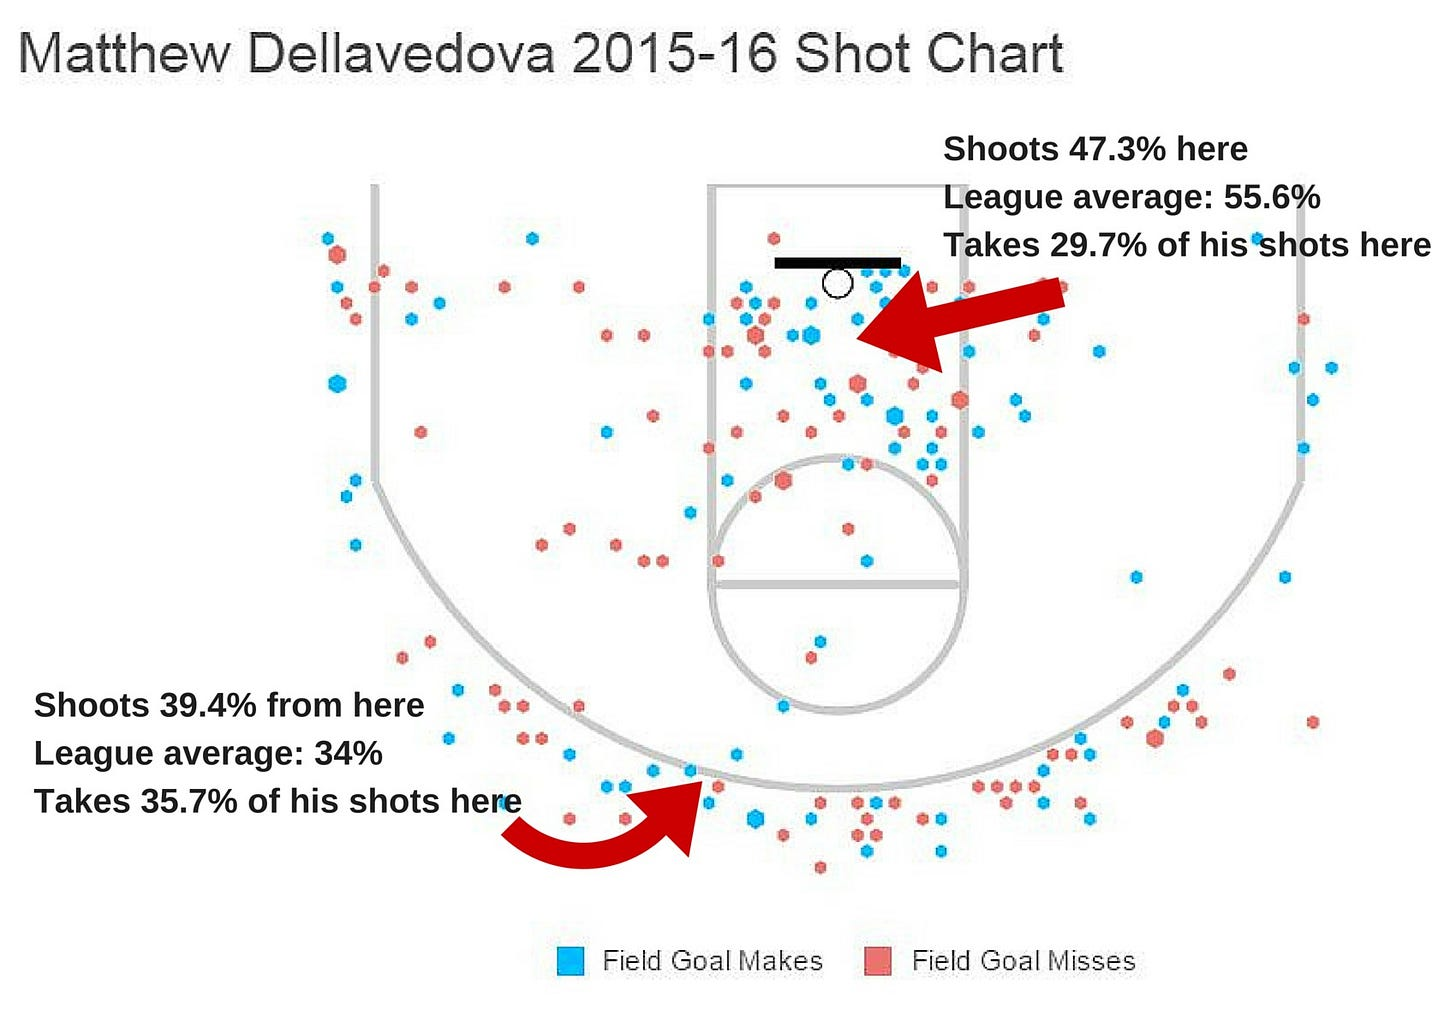 Delly shot chart